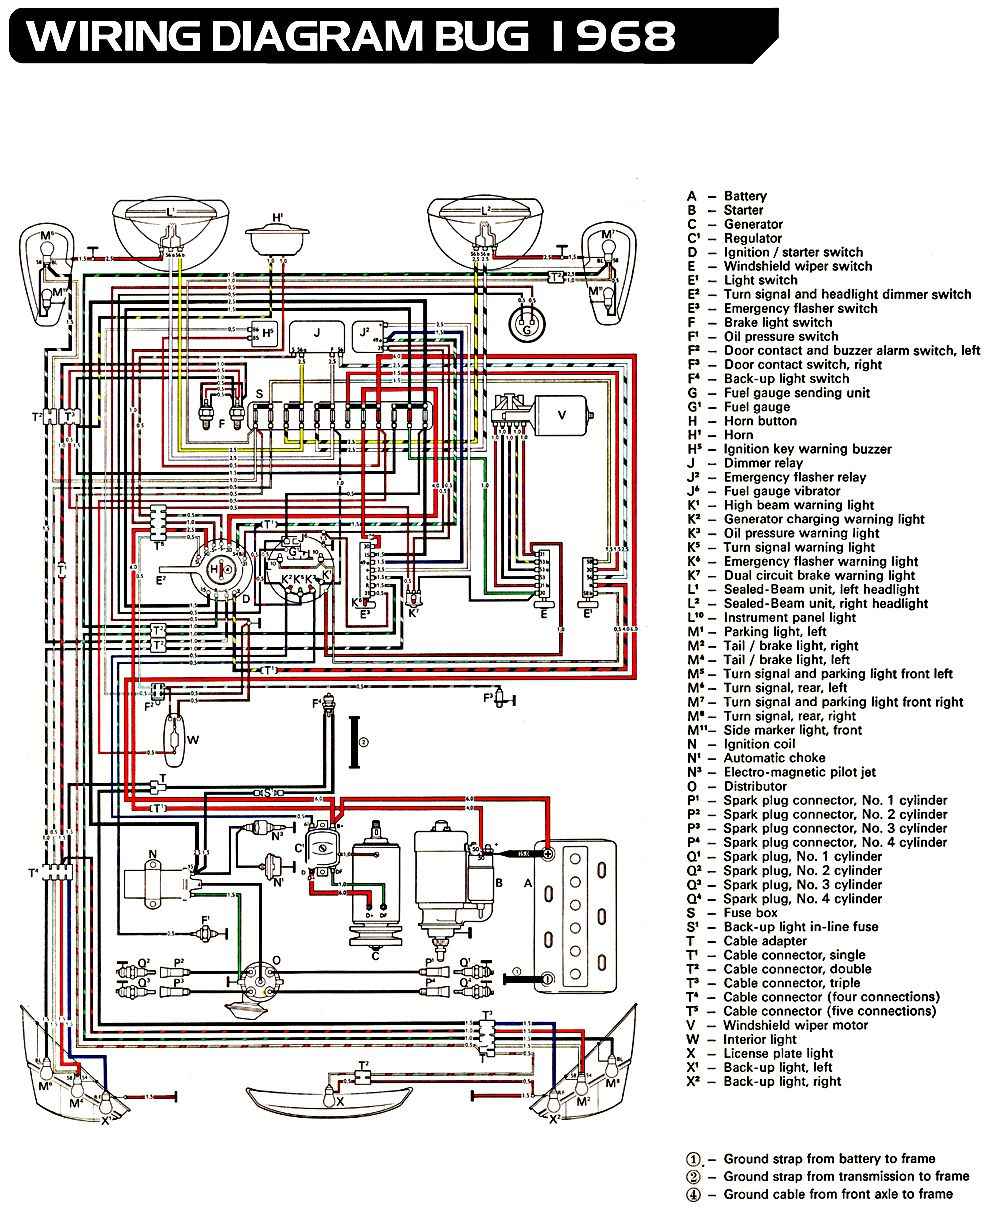 small resolution of ignition switch parts wiring for 1973 vw type 3 wiring diagramvw bug ignition wiring diagram 73